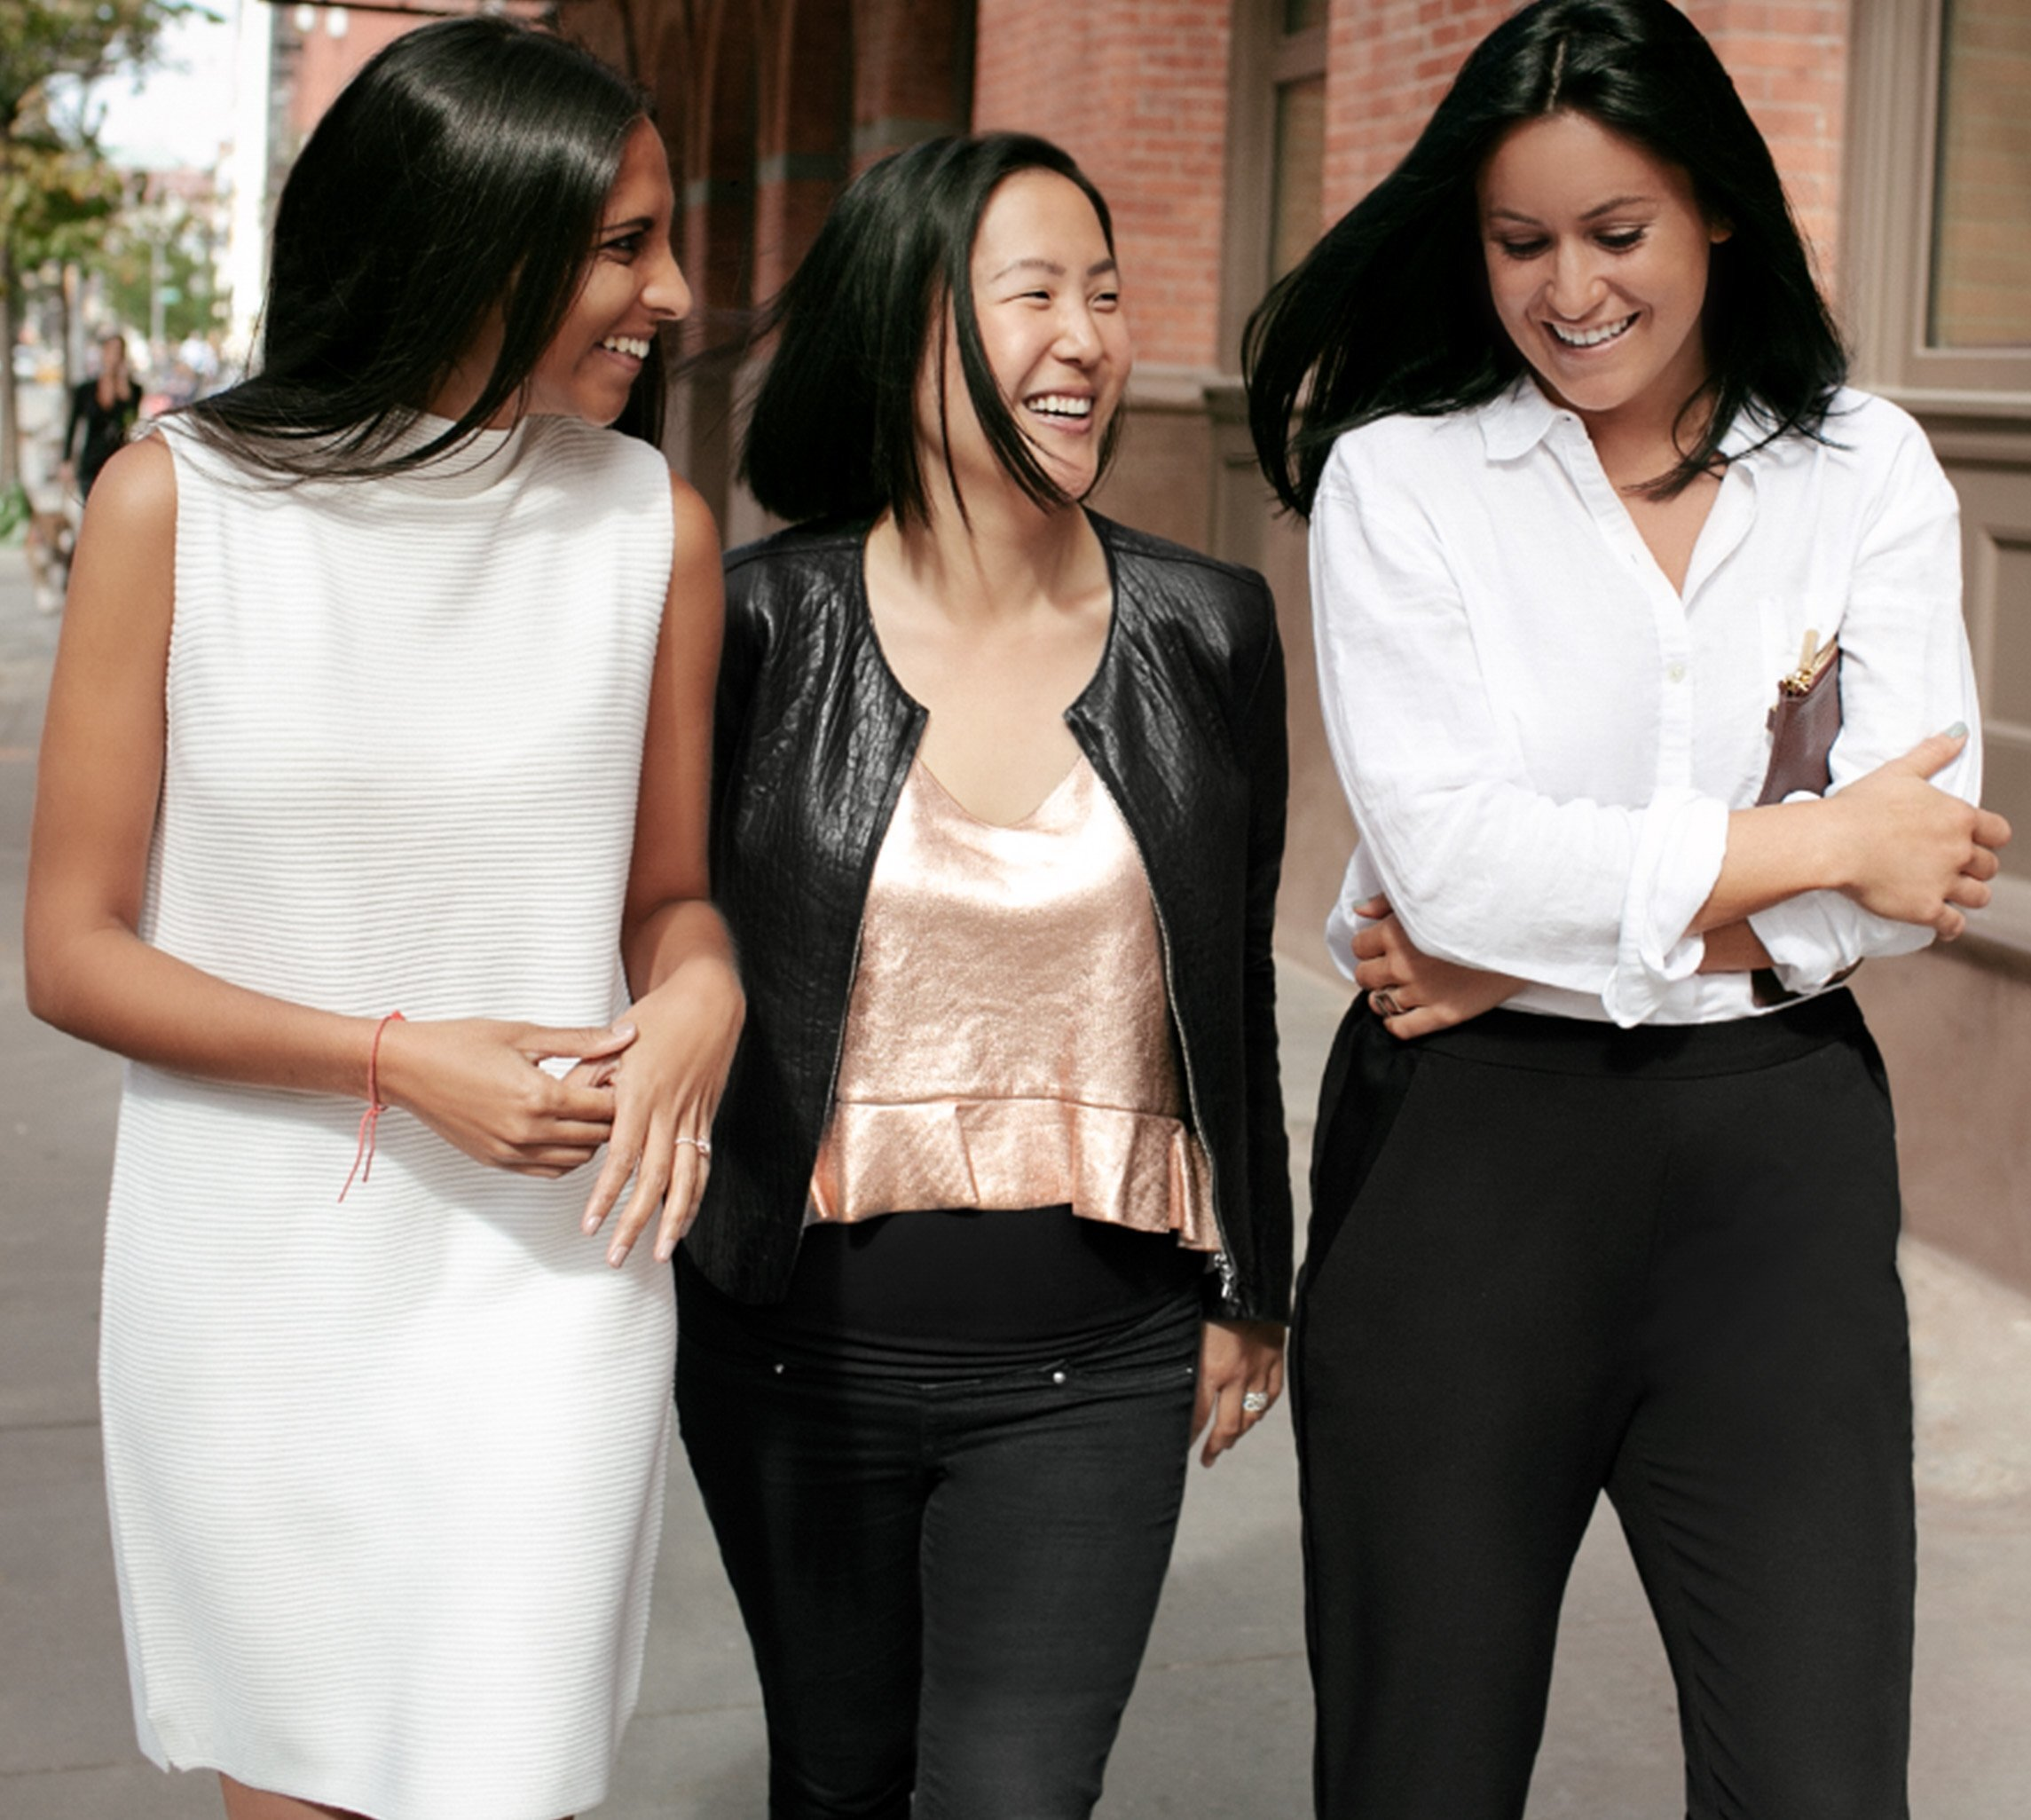 Founders of Dagne Dover: Deepa Gandhi, Melissa Shin Mash and Jessy Dover